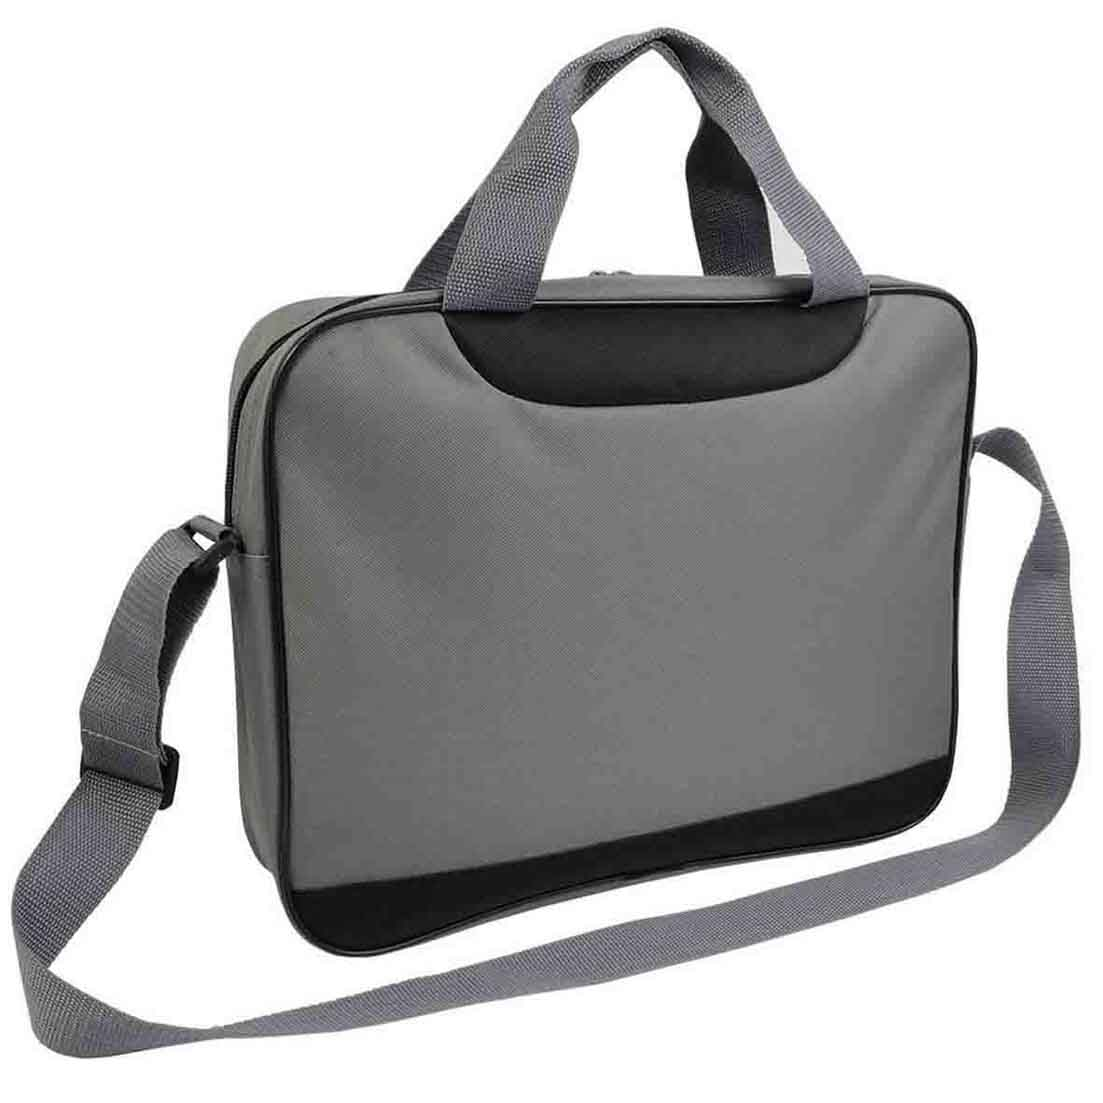 Document bag with zipper - Grey sip-1514082